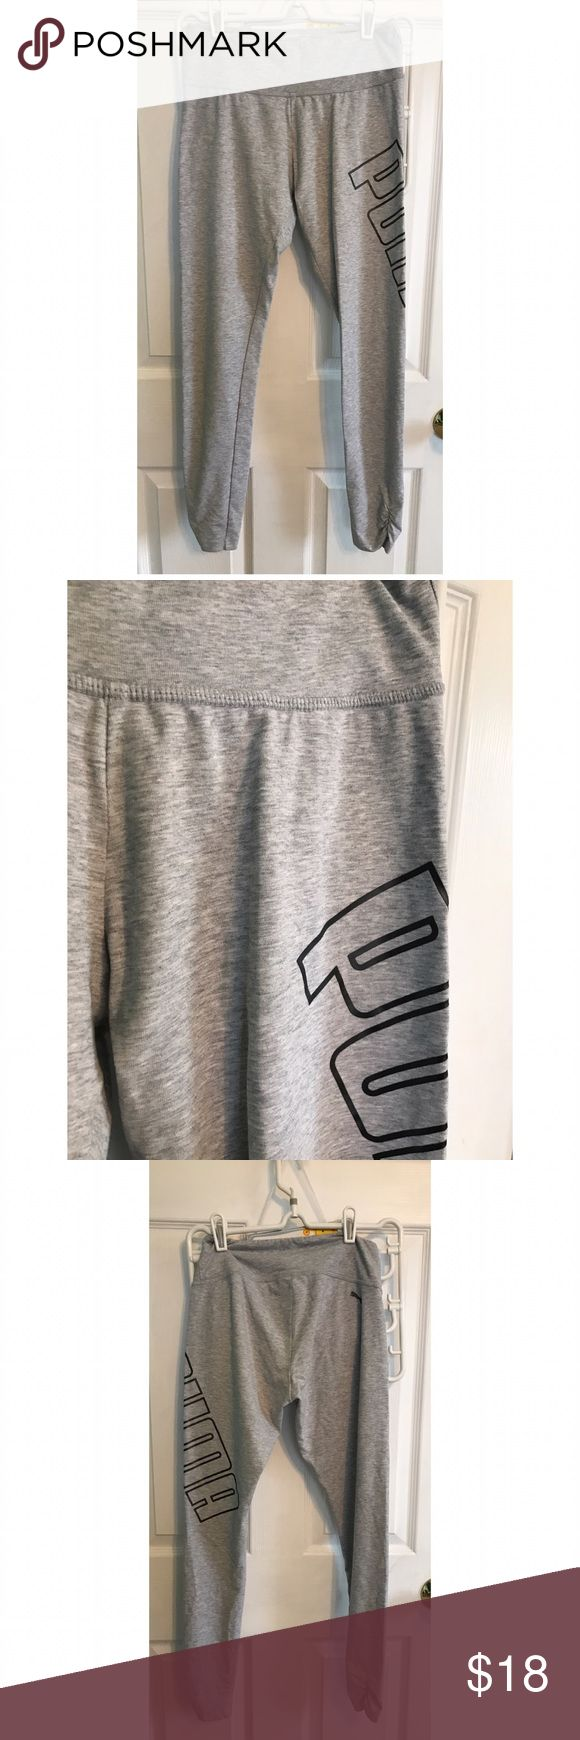 Puma leggings -Puma  -Ladies leggings  -Special Features   •puma logo wraps around side of leg  •sinched bottoms -Size Small  -Black logo on grey -Used but In Perfect Condition besides,  •two little brown spots on the butt (as seen above) Ask if any questions! Taking reasonable offers! Puma Pants Leggings